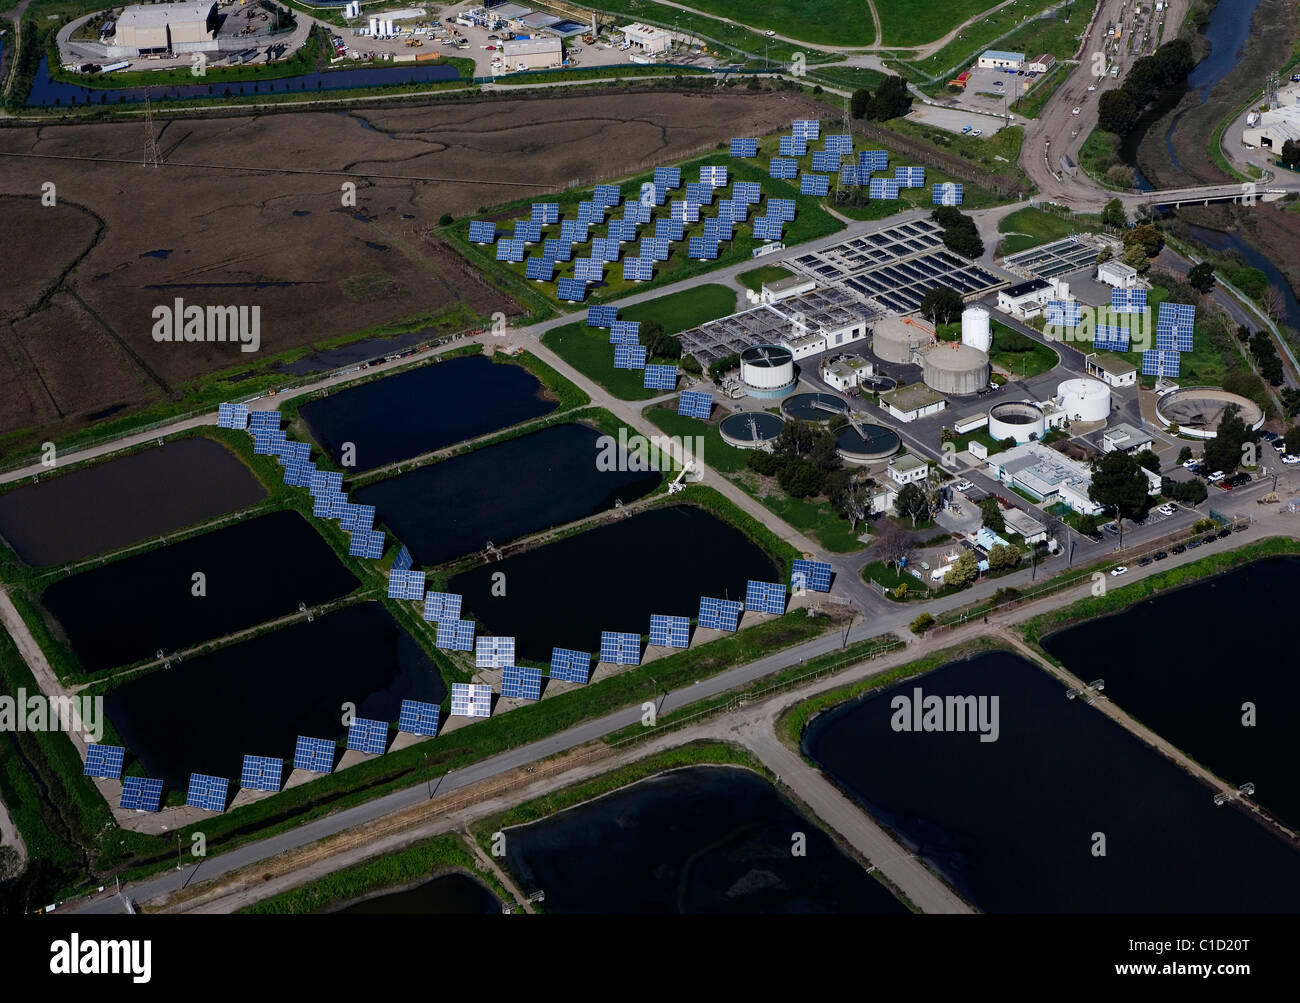 aerial view above solar panel installation wastewater treatment plant Richmond California - Stock Image